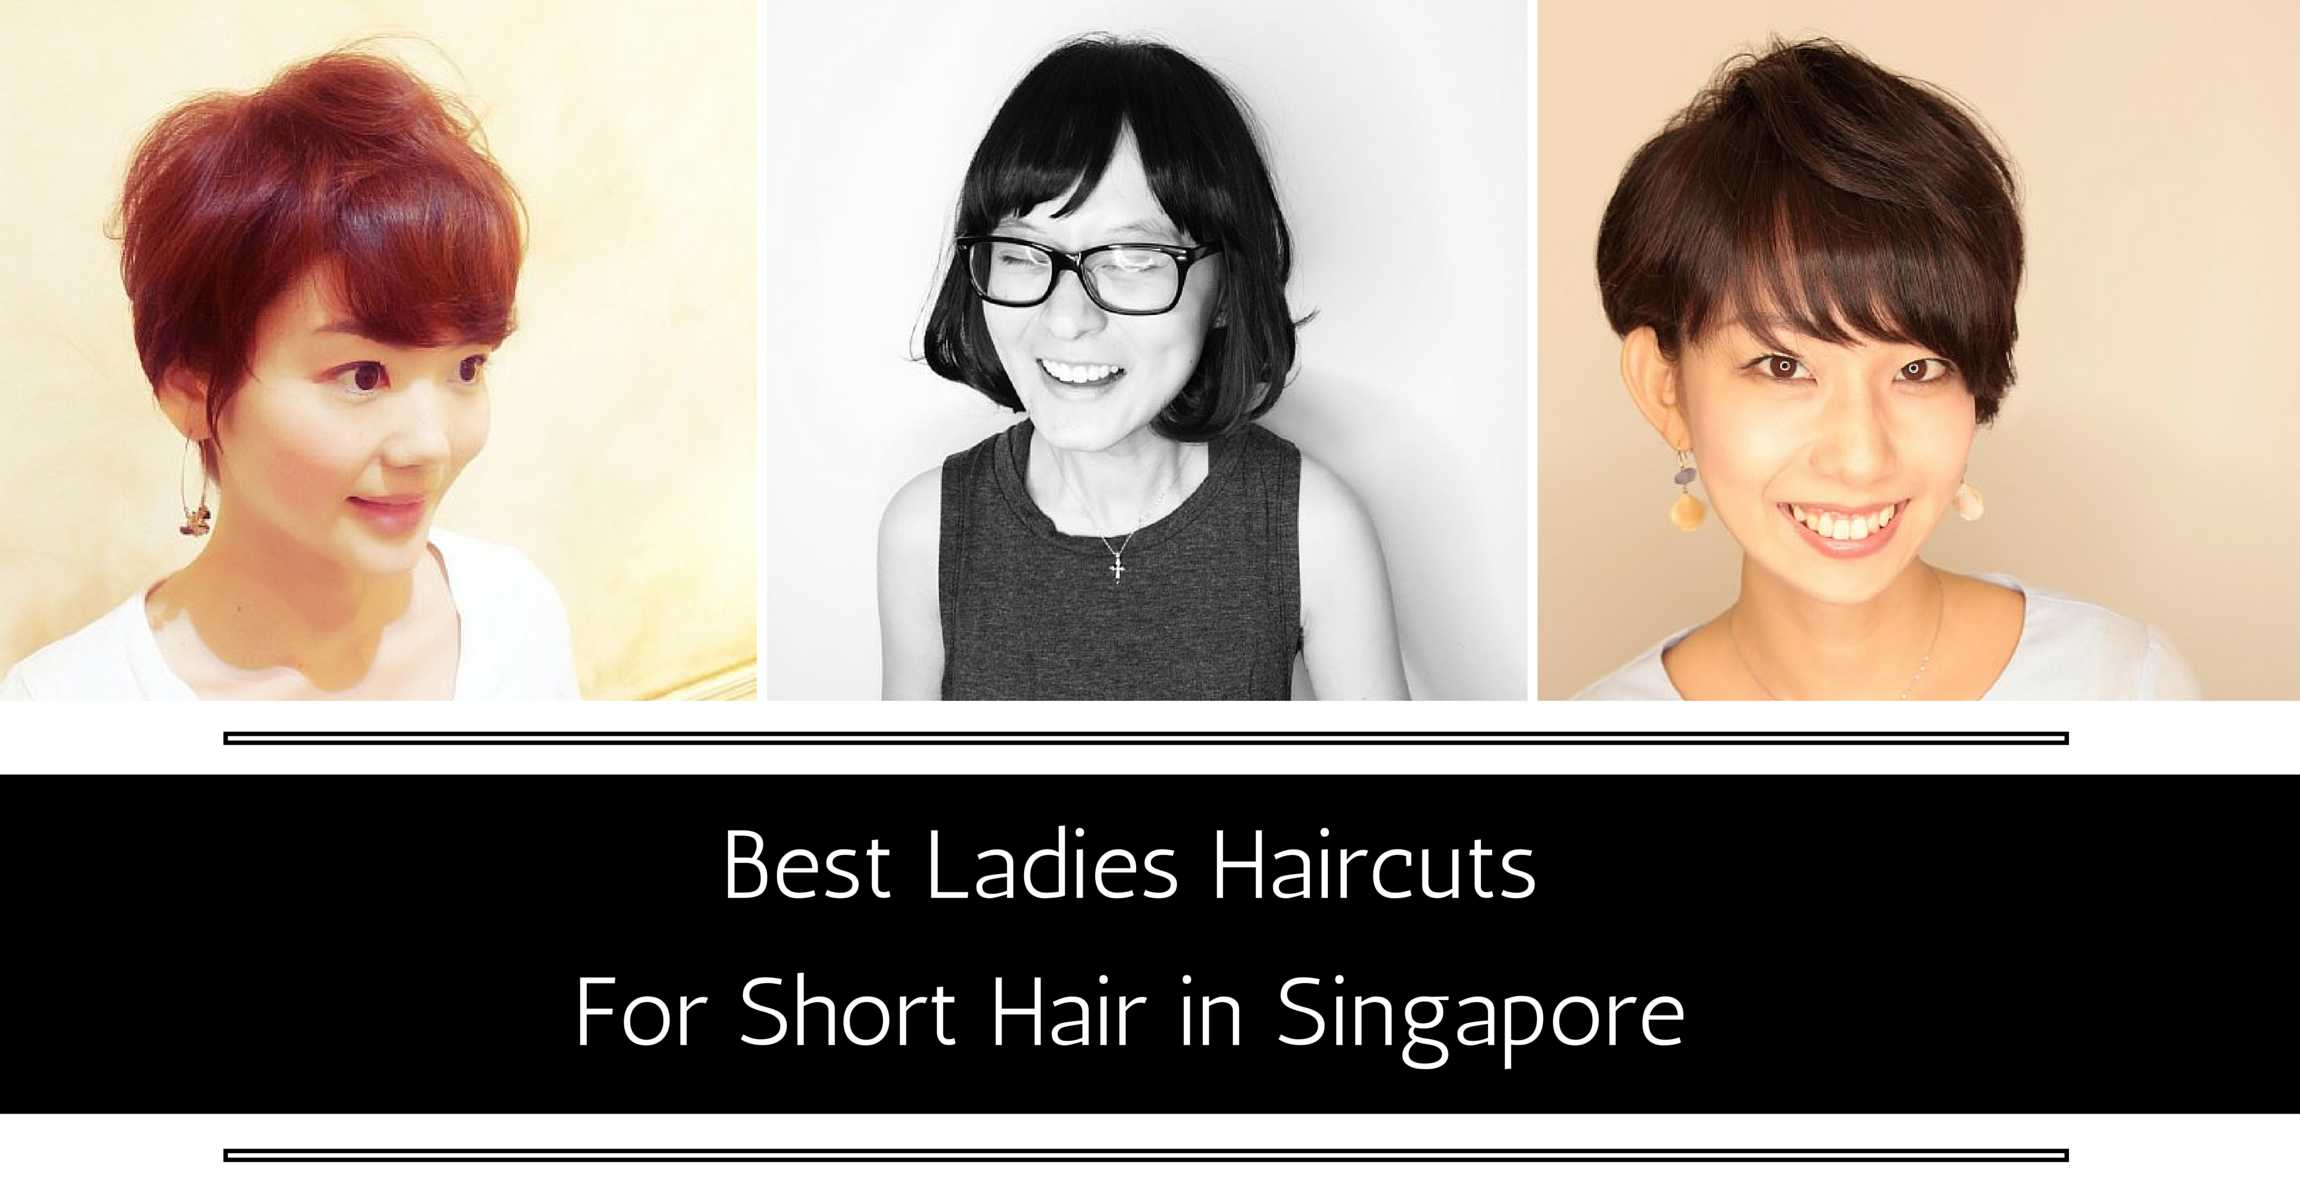 Salon Hairstyles For Short Hair Best Ladies Haircuts For Short Hair In Singapore